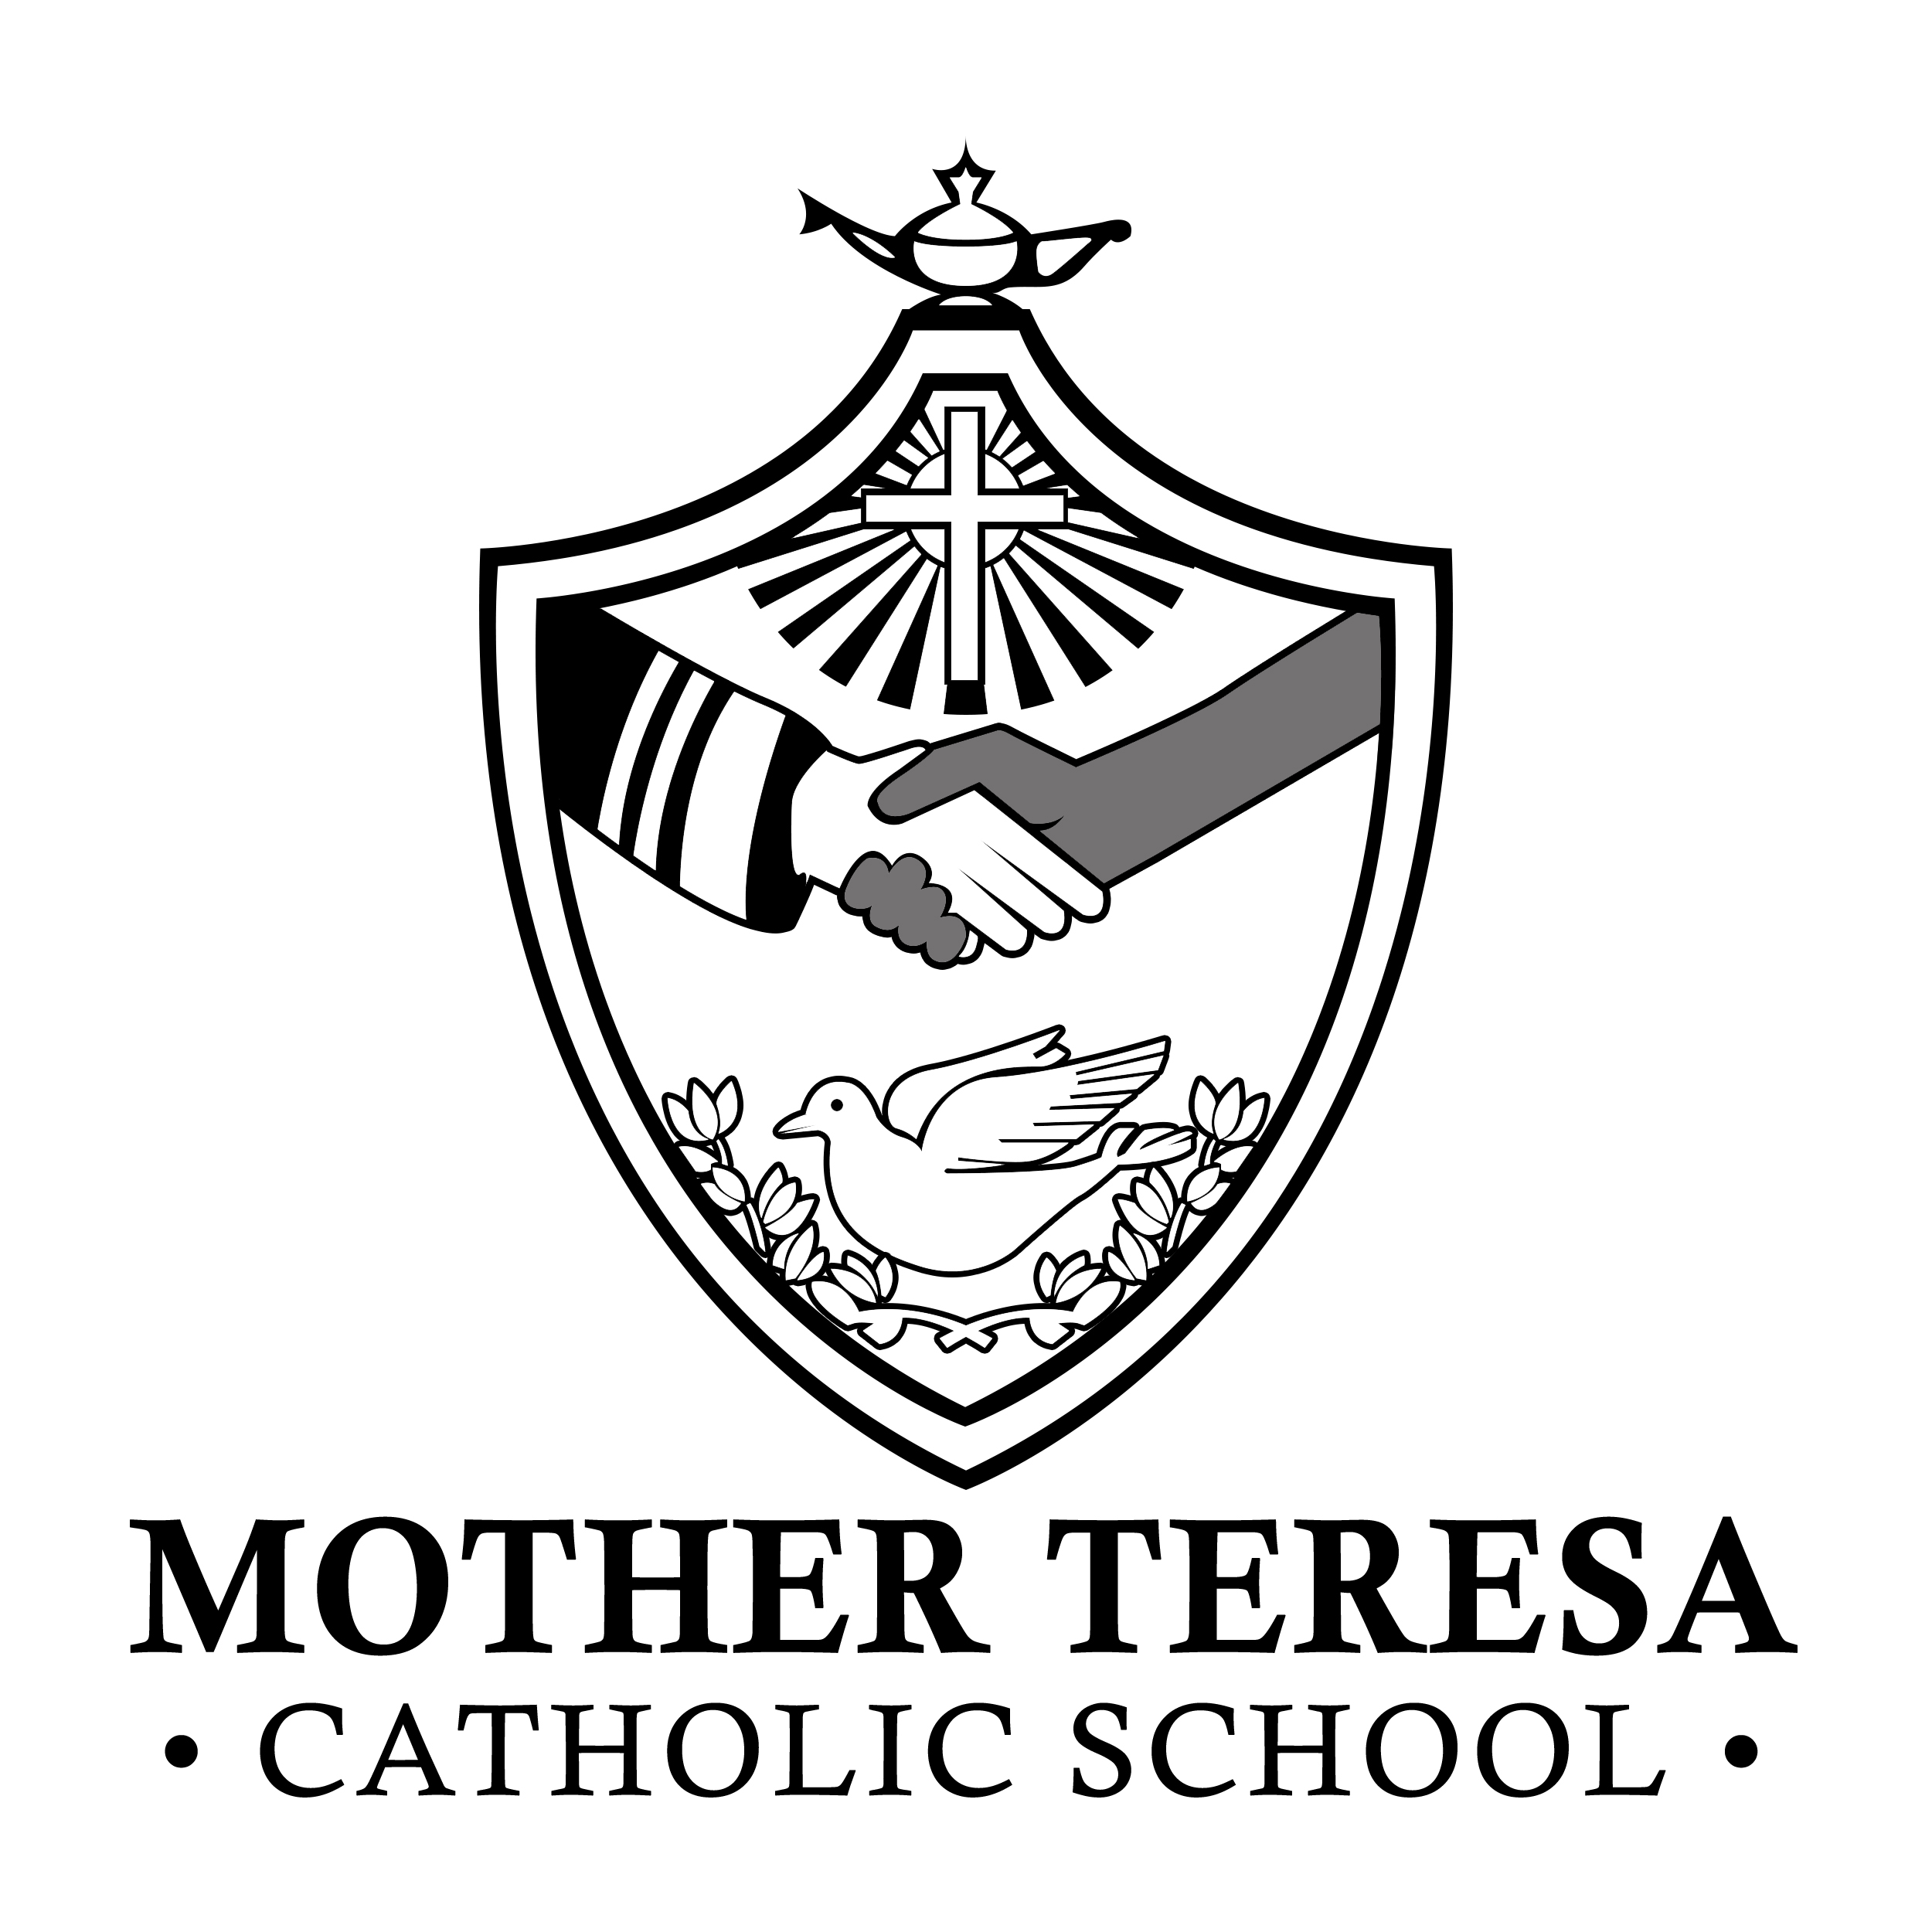 Mother Teresa Catholic School logo